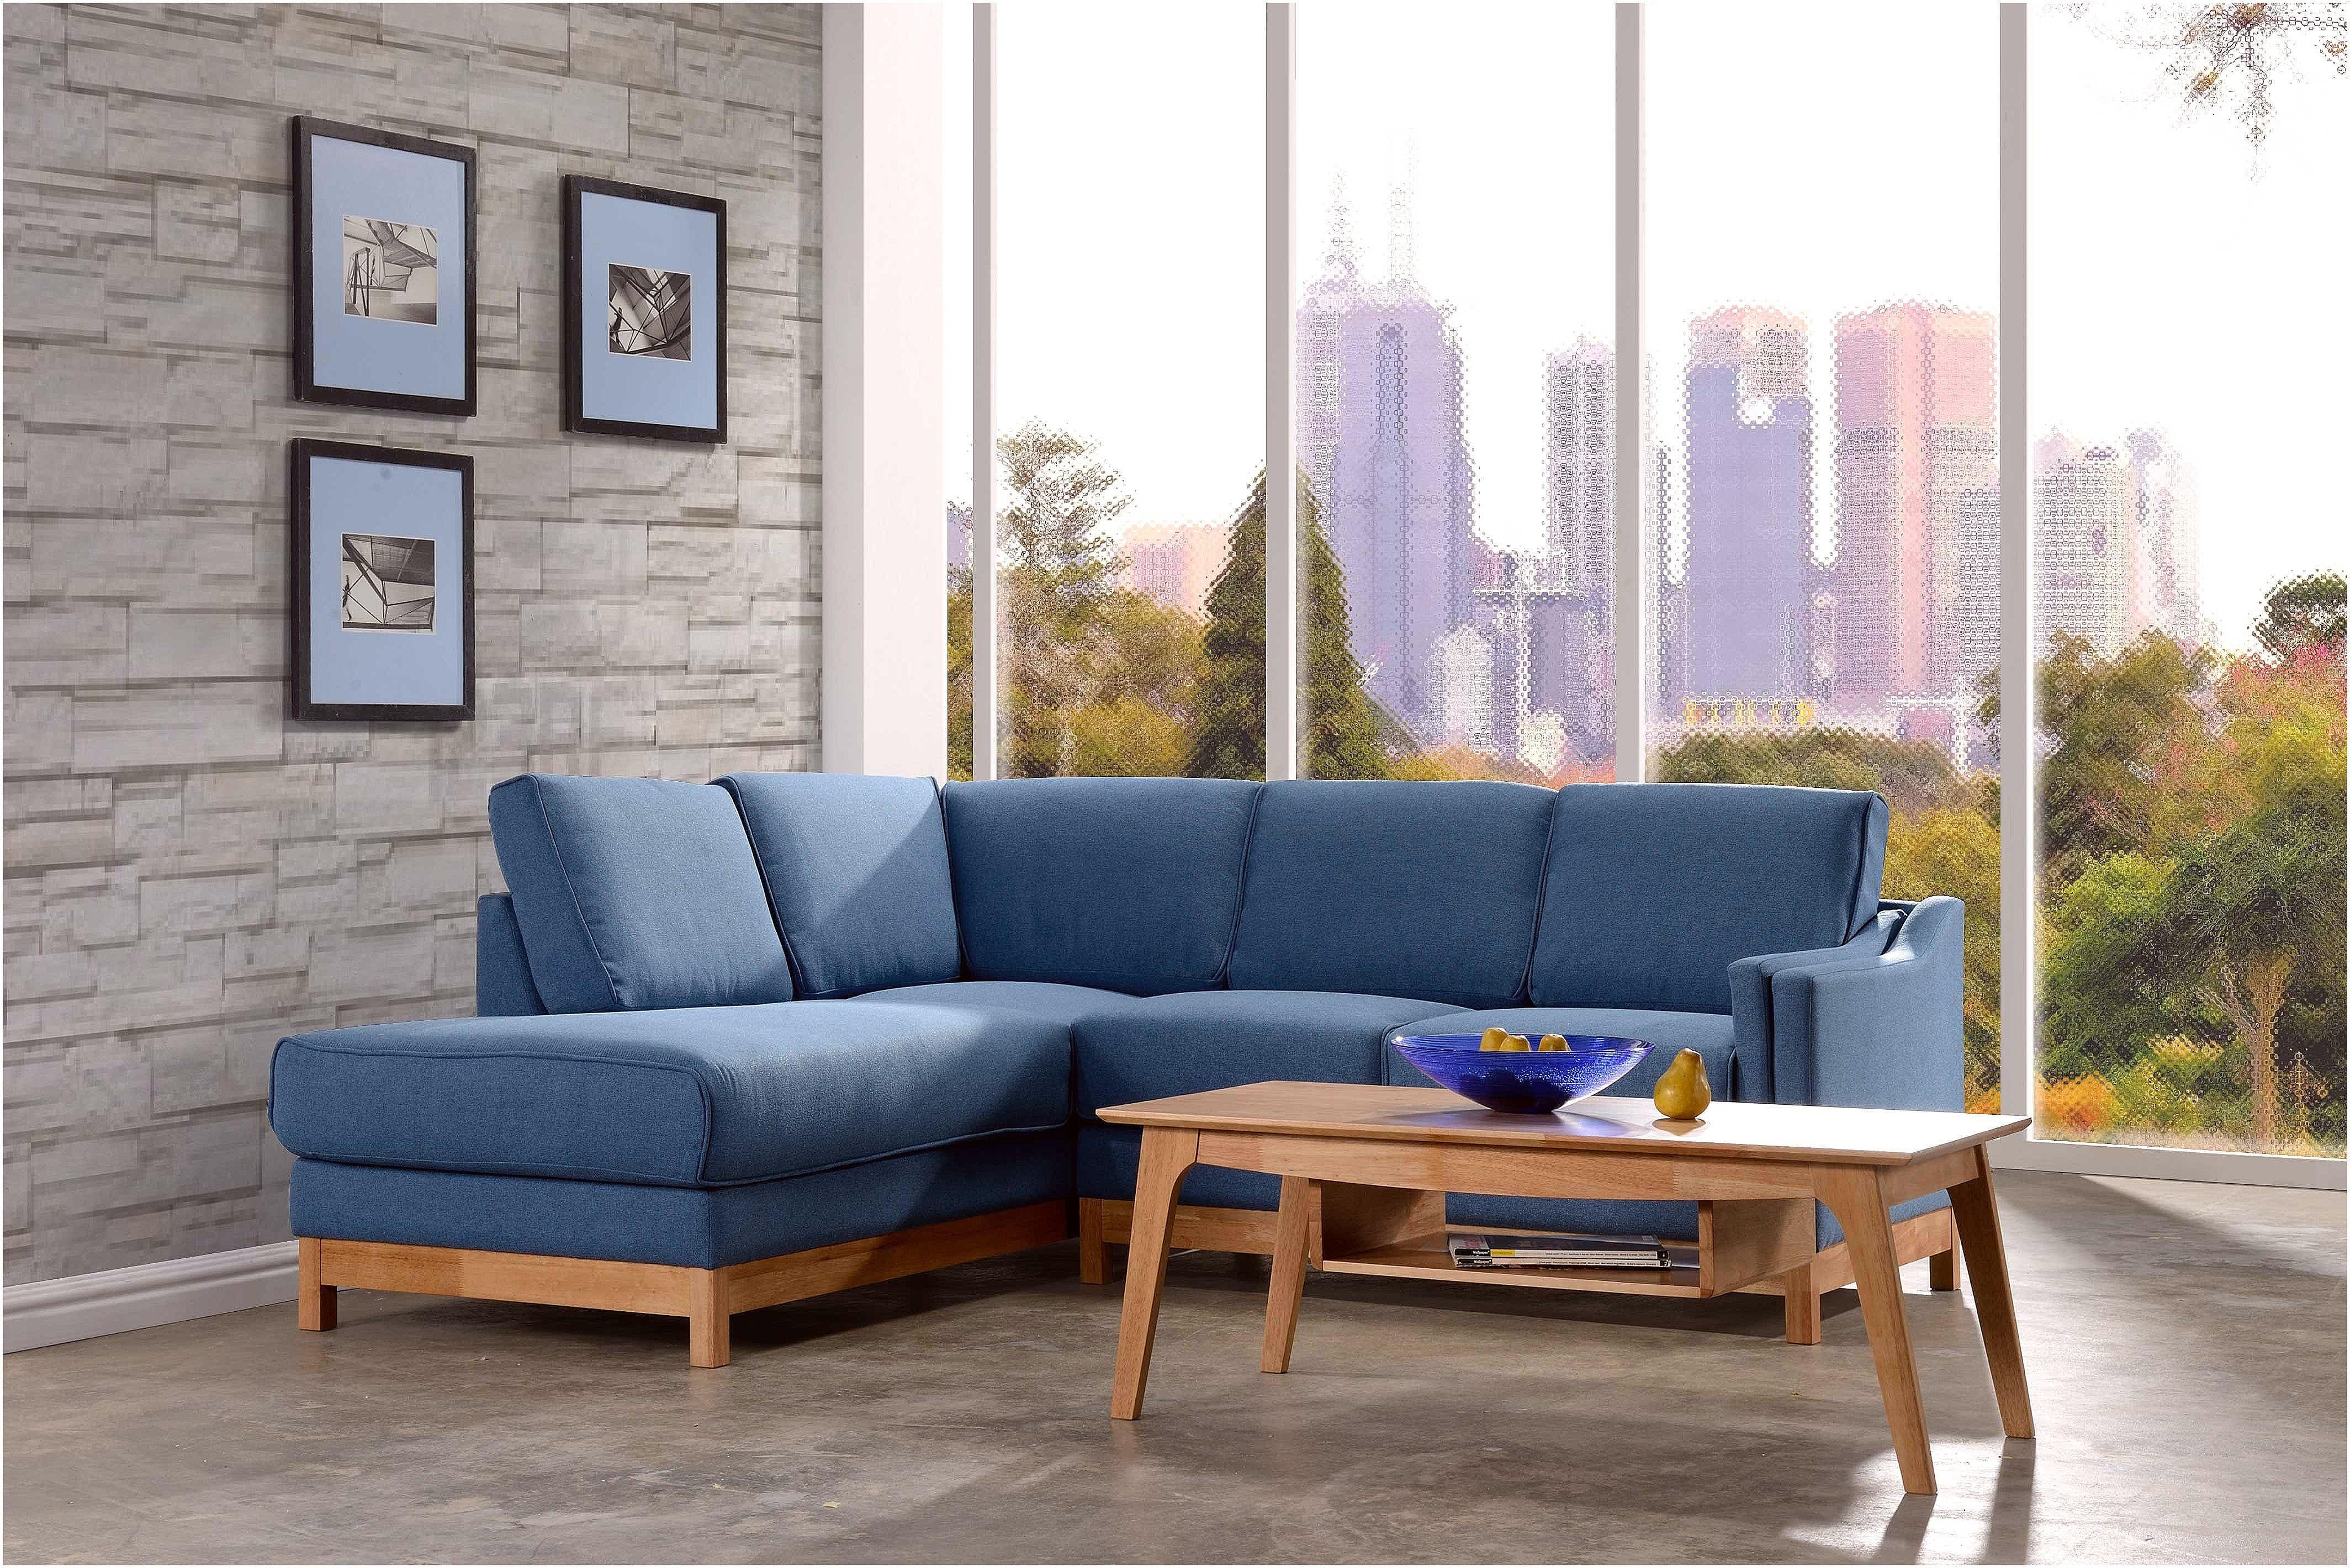 Lovely Simple Living Room Decor Ideas Blue Living Room Decor Blue Living Room Blue Sofas Living Room